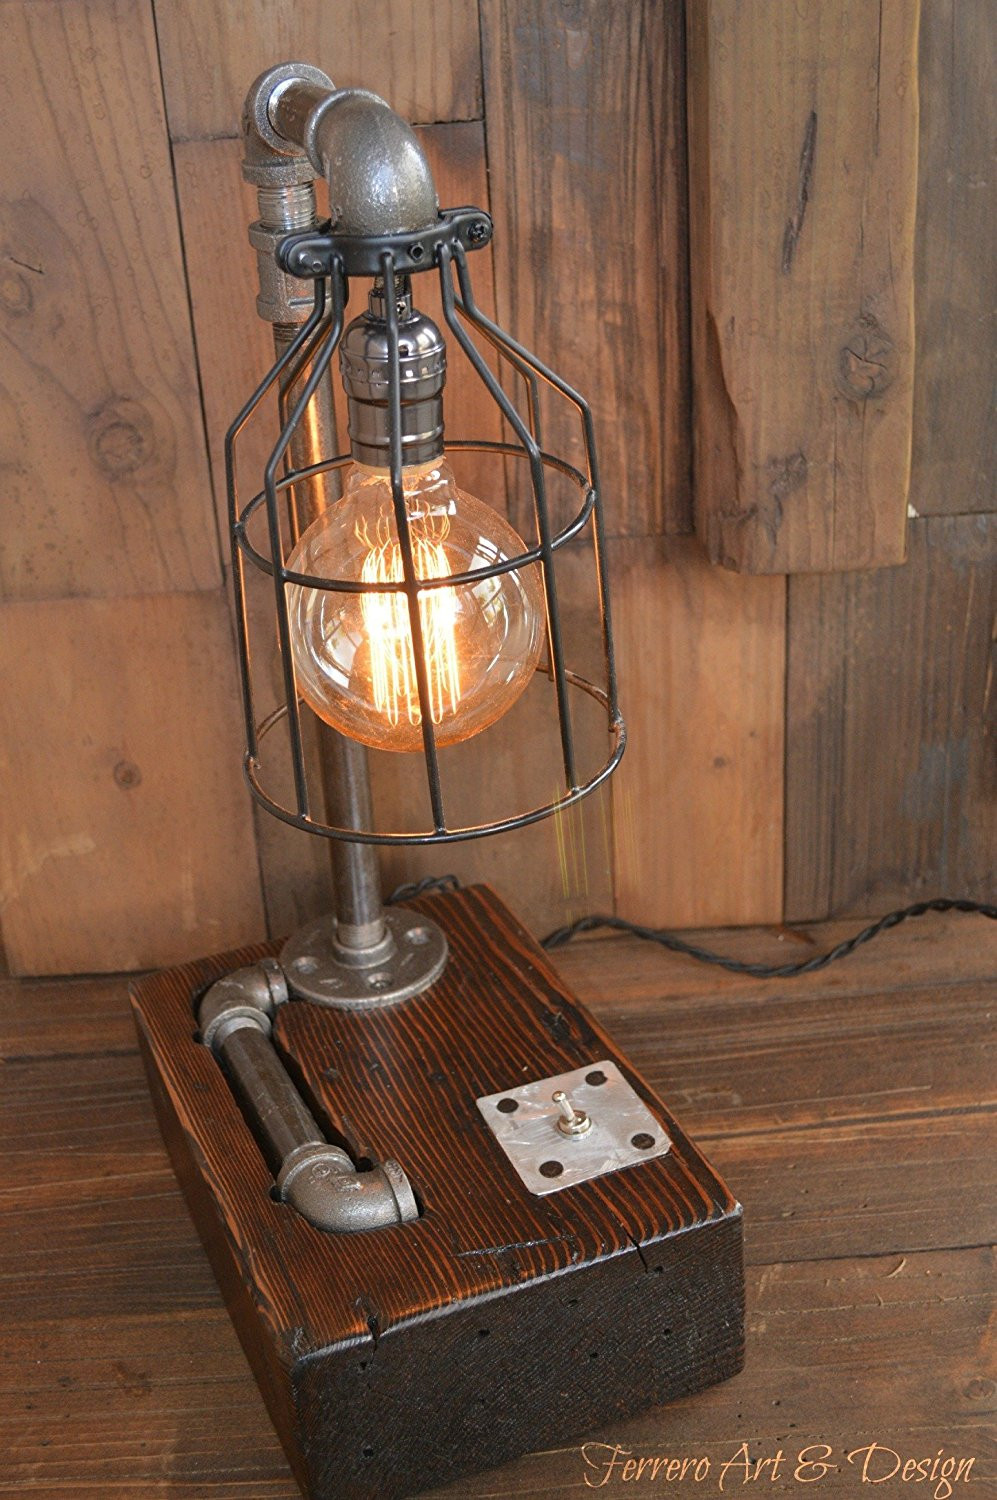 Best ideas about Rustic Desk Lamp . Save or Pin Amazon Steampunk Desk Lamp Lighting Rustic Light Now.